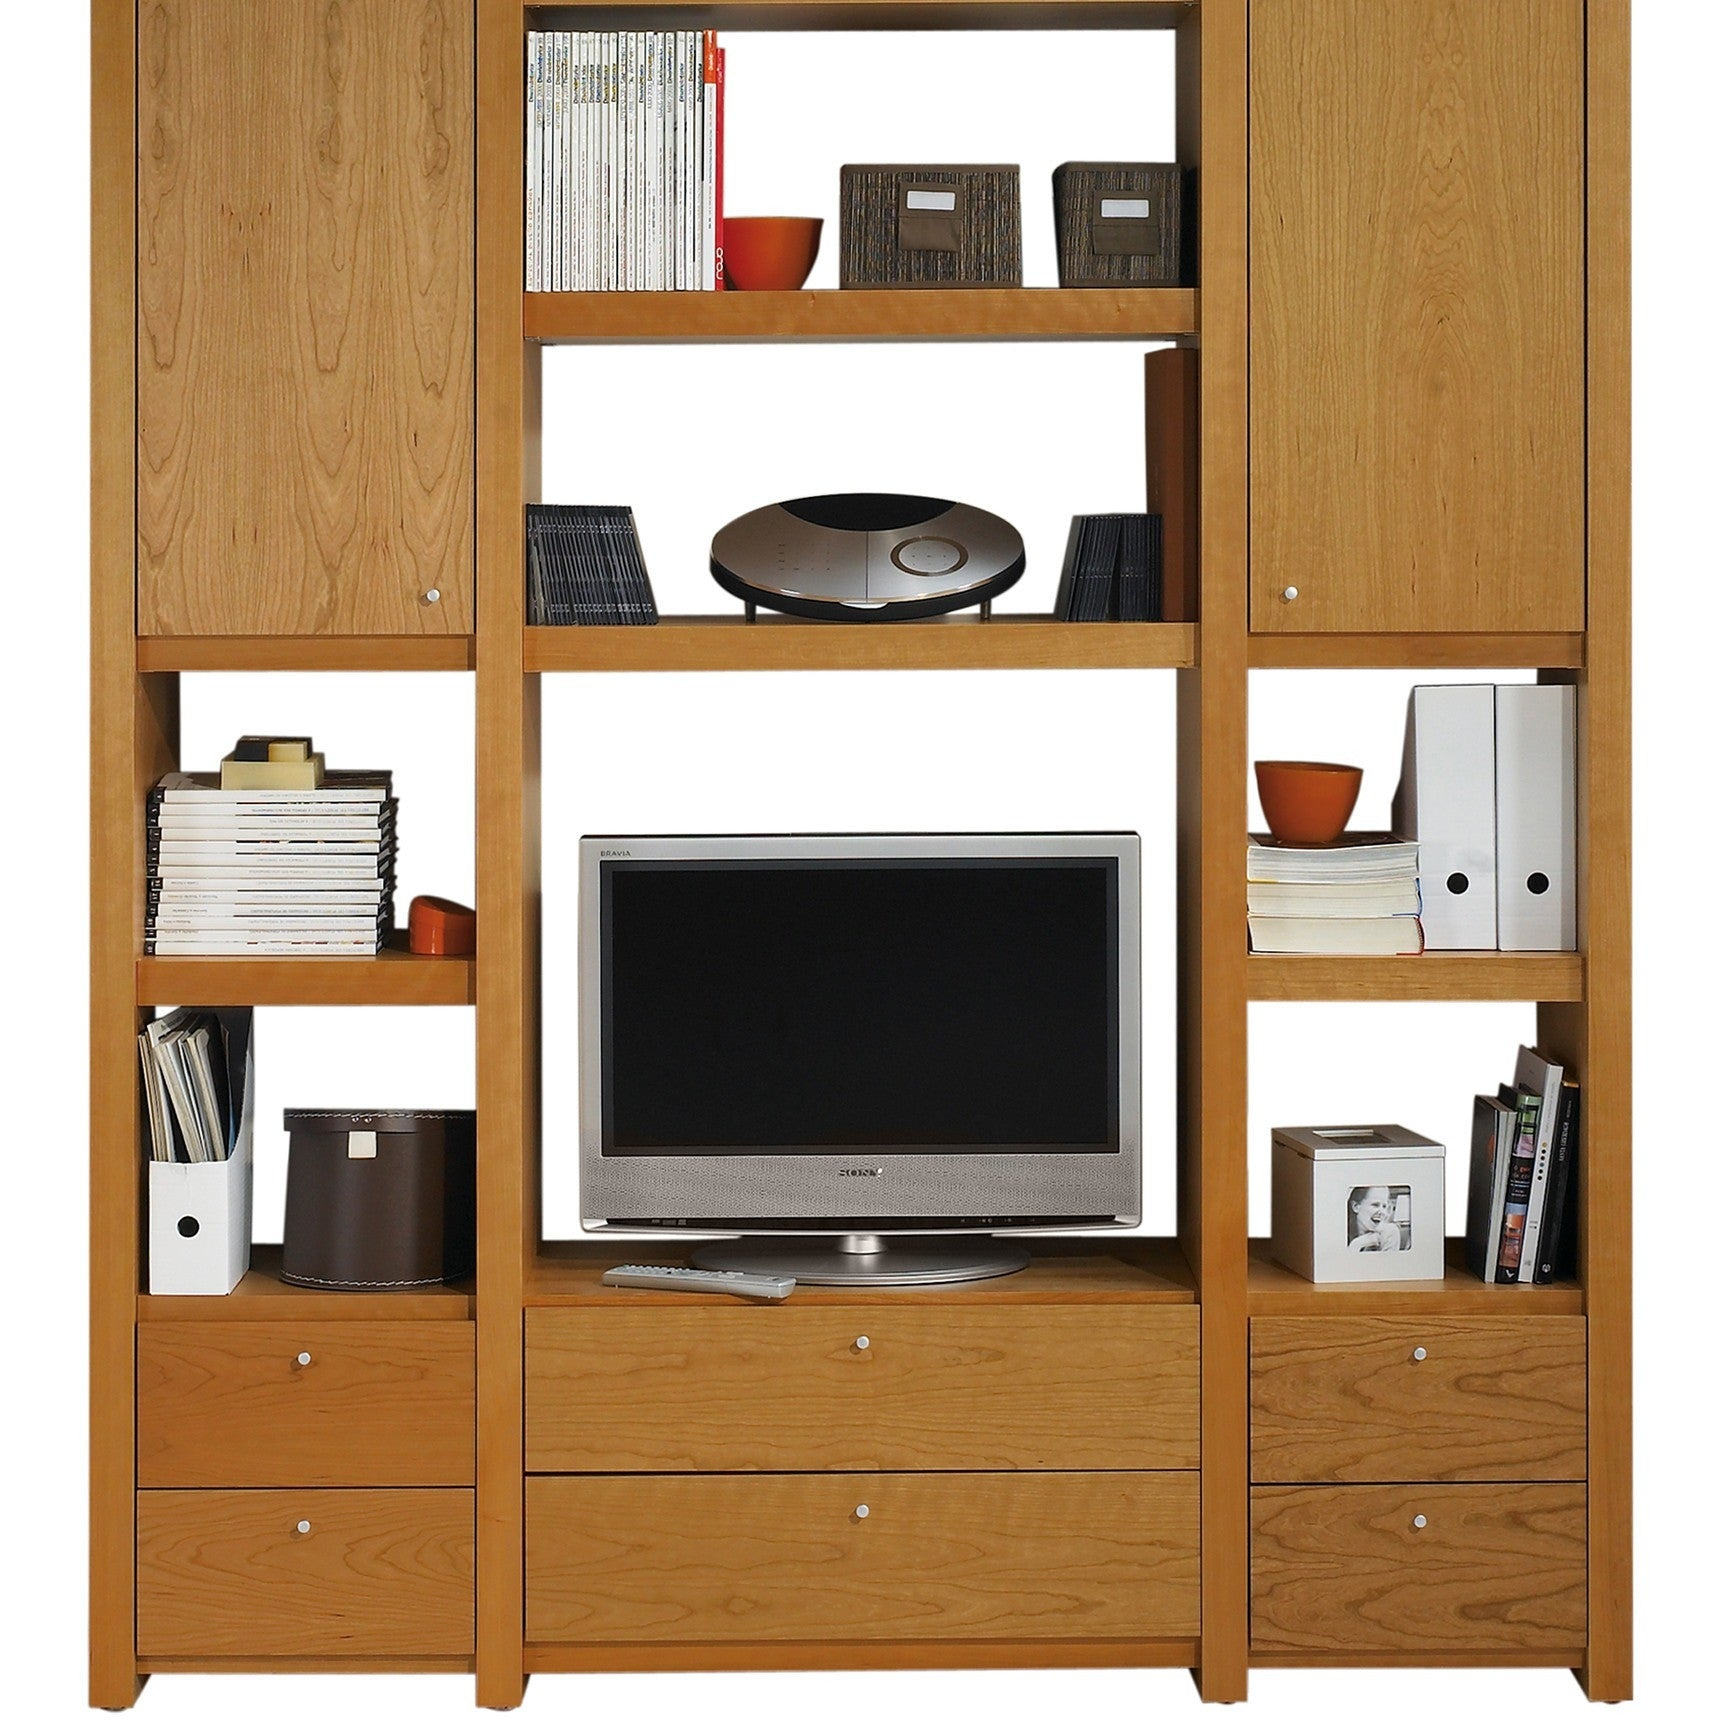 atlas composition shu13 cherry bookcase by tema home